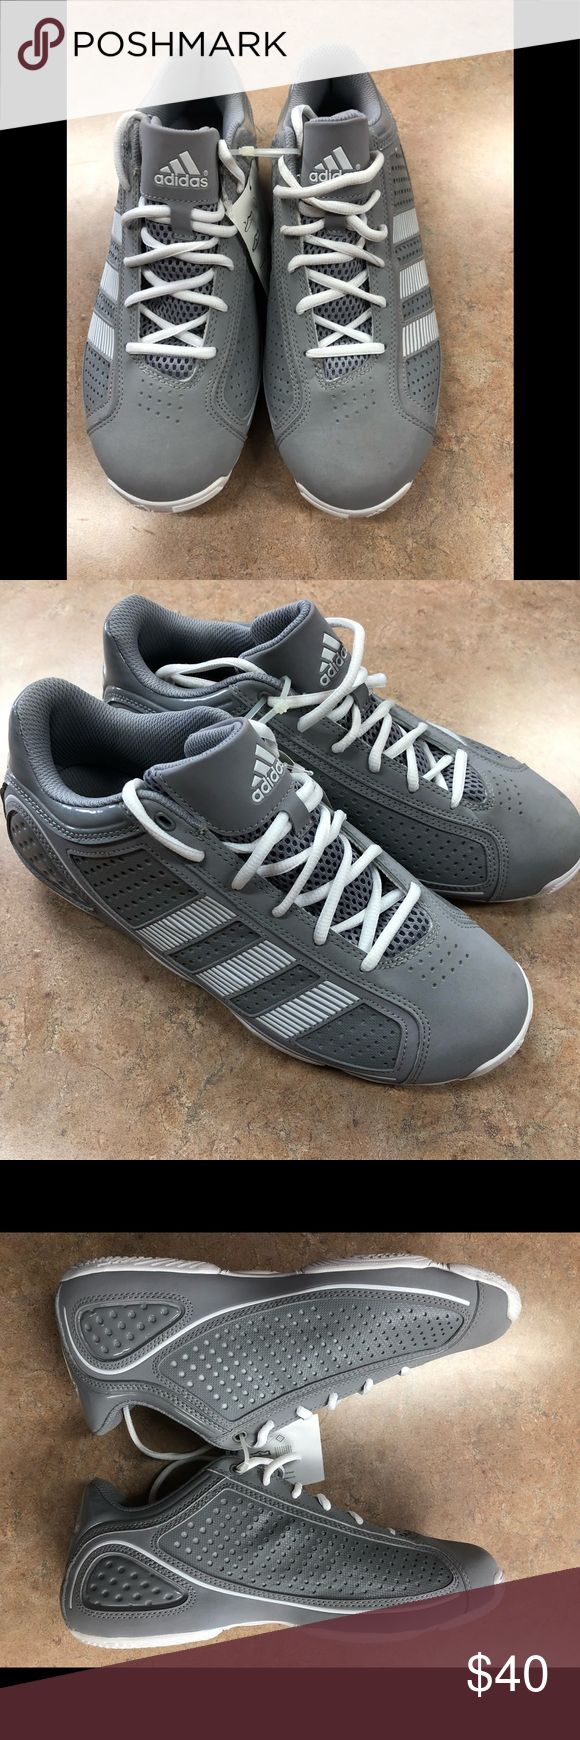 Adidas Infiltrate Low Shoes - Men Size 7 Adidas Infiltrate Low - Men's Size 7 New with tags (no box)/never worn Non smoking, no flaws adidas Shoes Sneakers